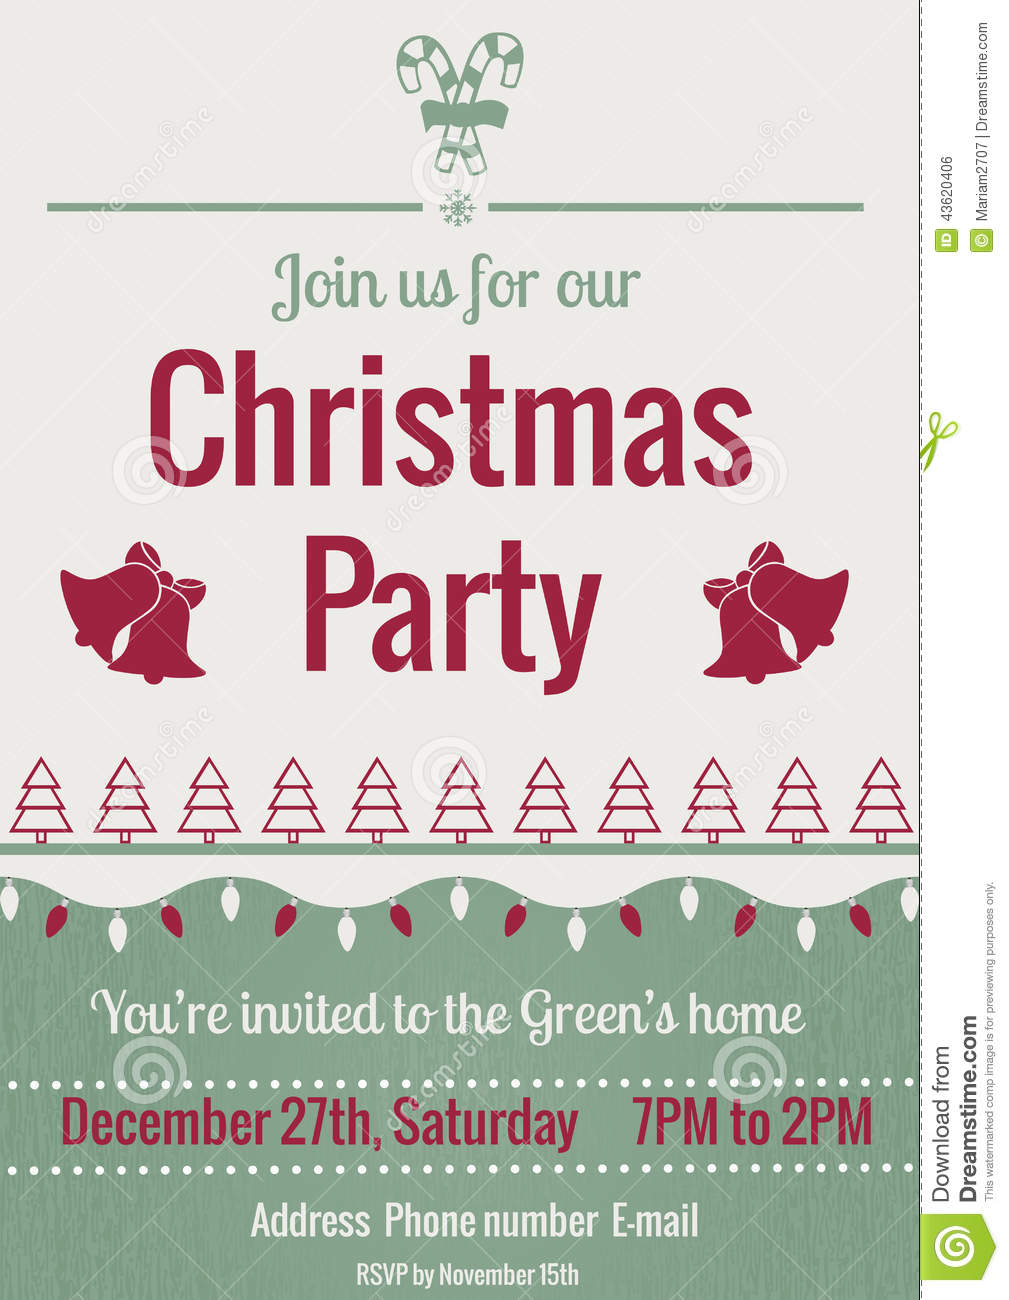 Vintage christmas party invitation stock vector illustration of vintage christmas party invitation royalty free vector stopboris Image collections